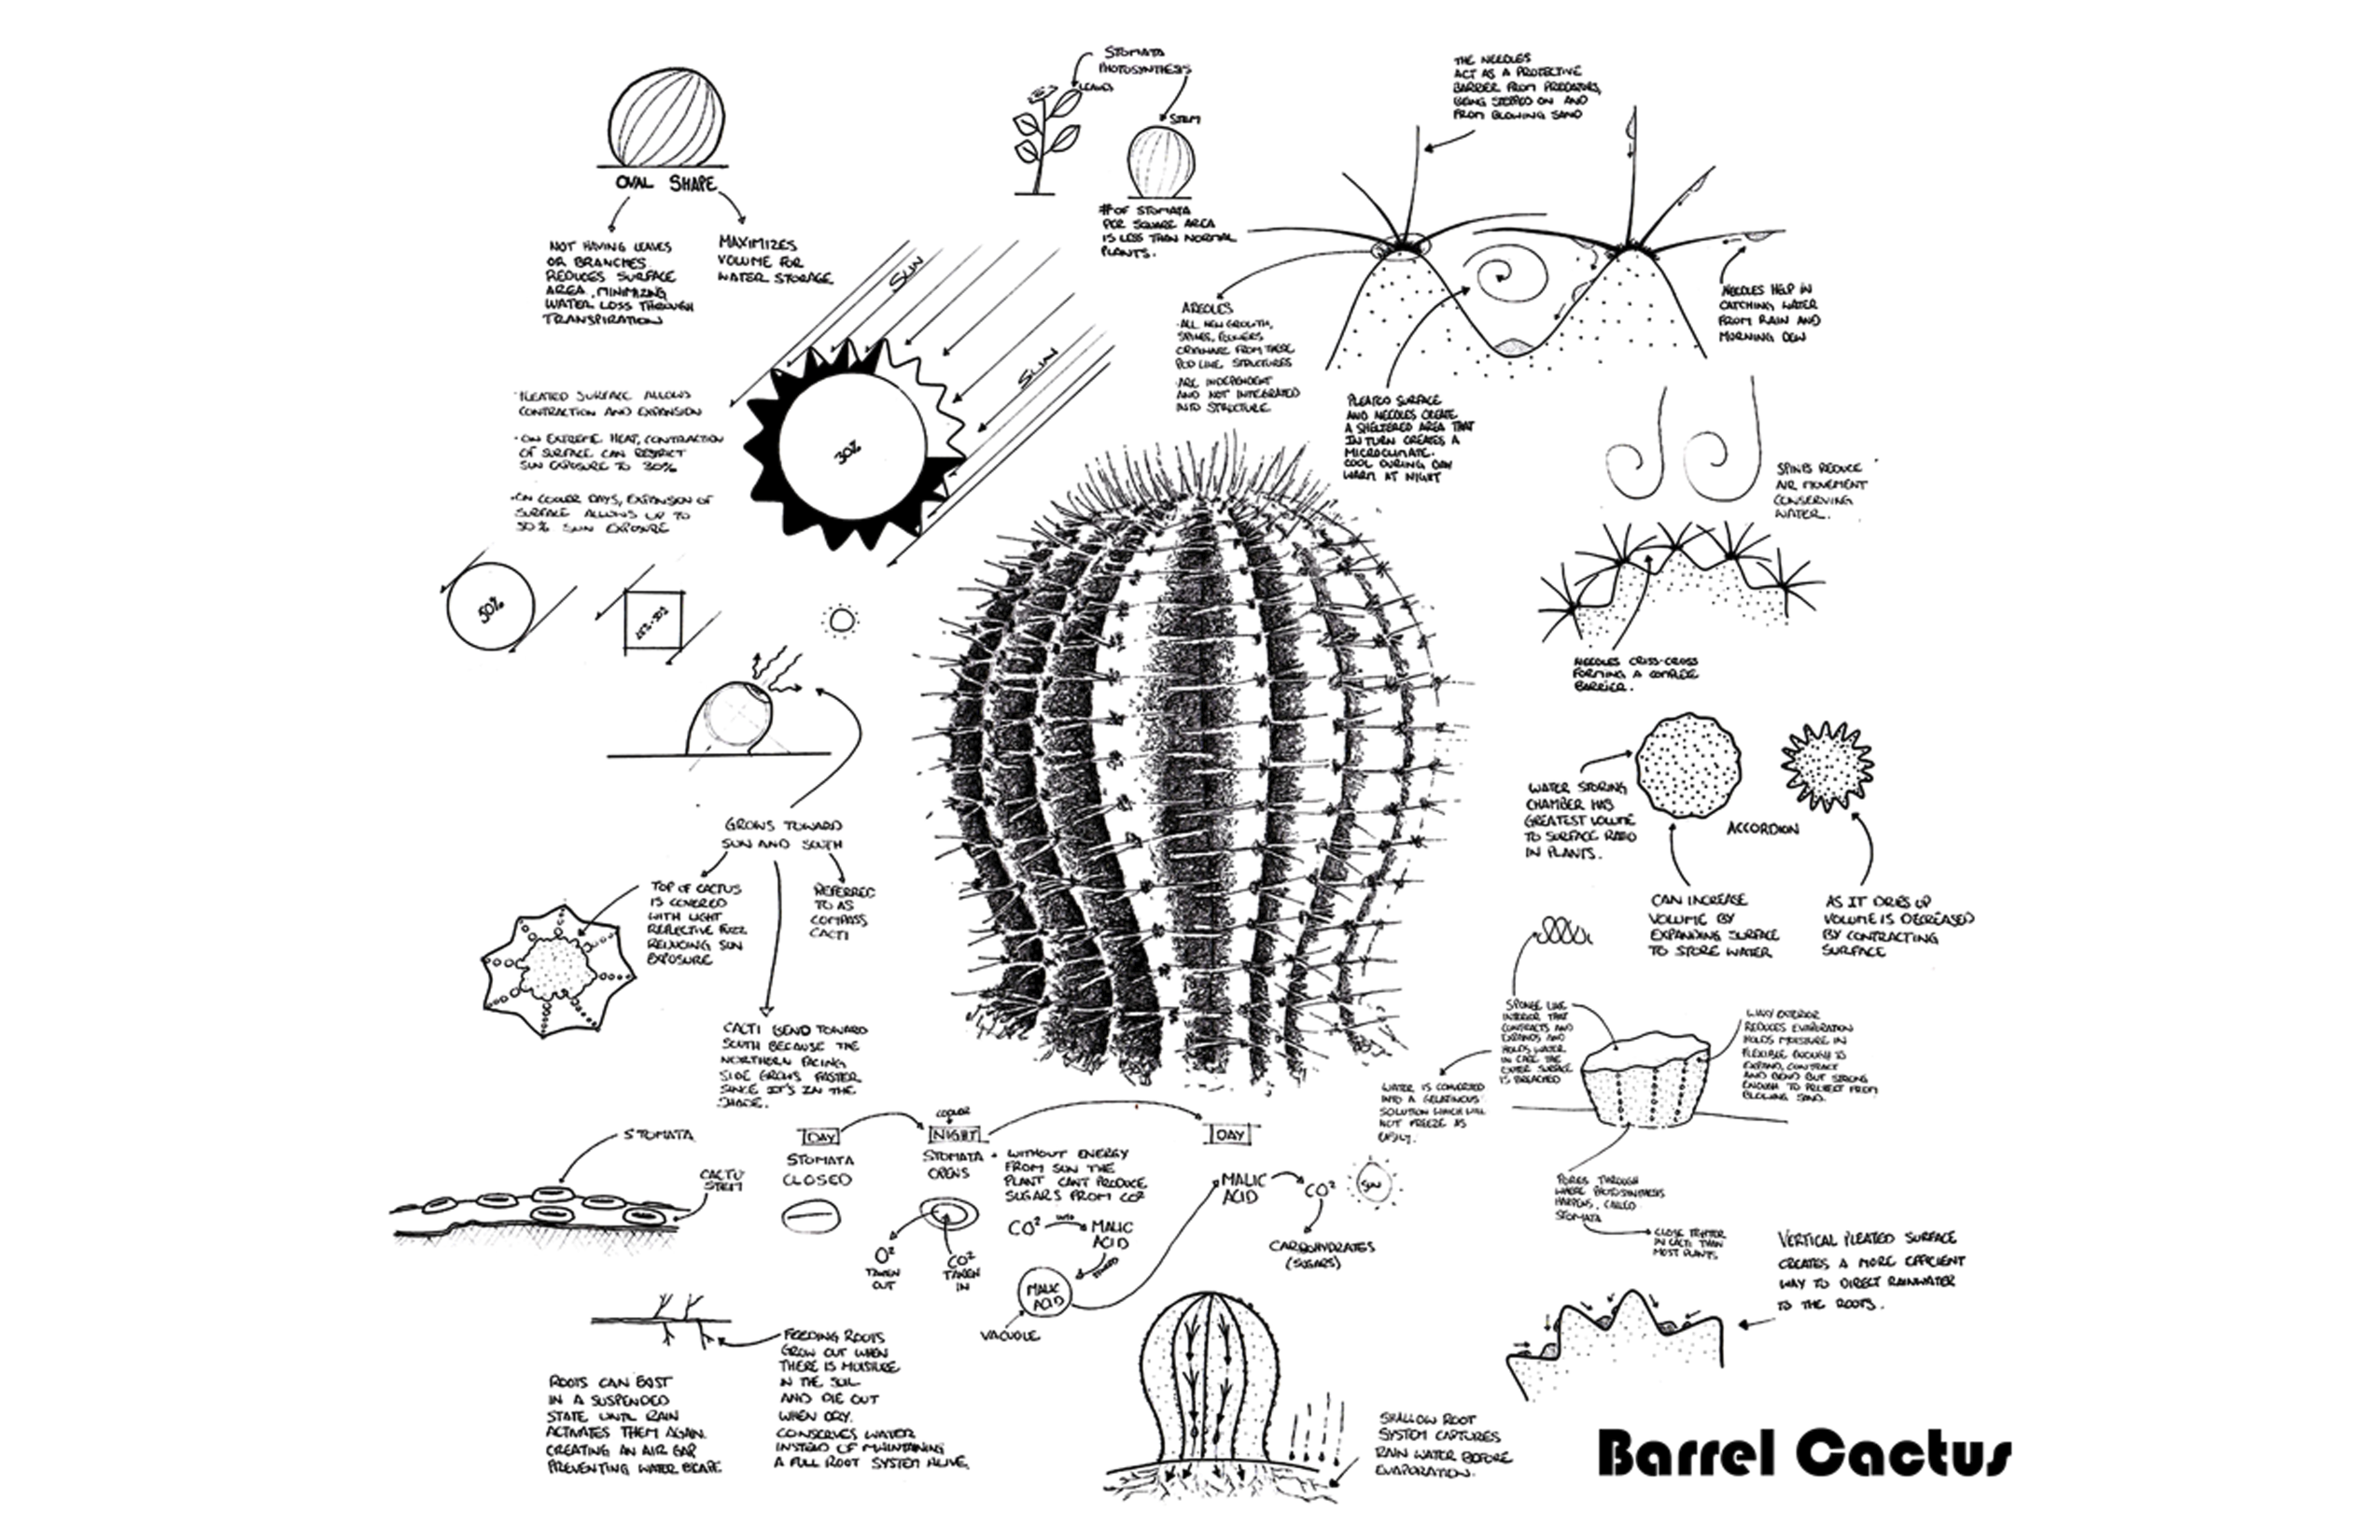 Learning From A Barrel Cactus